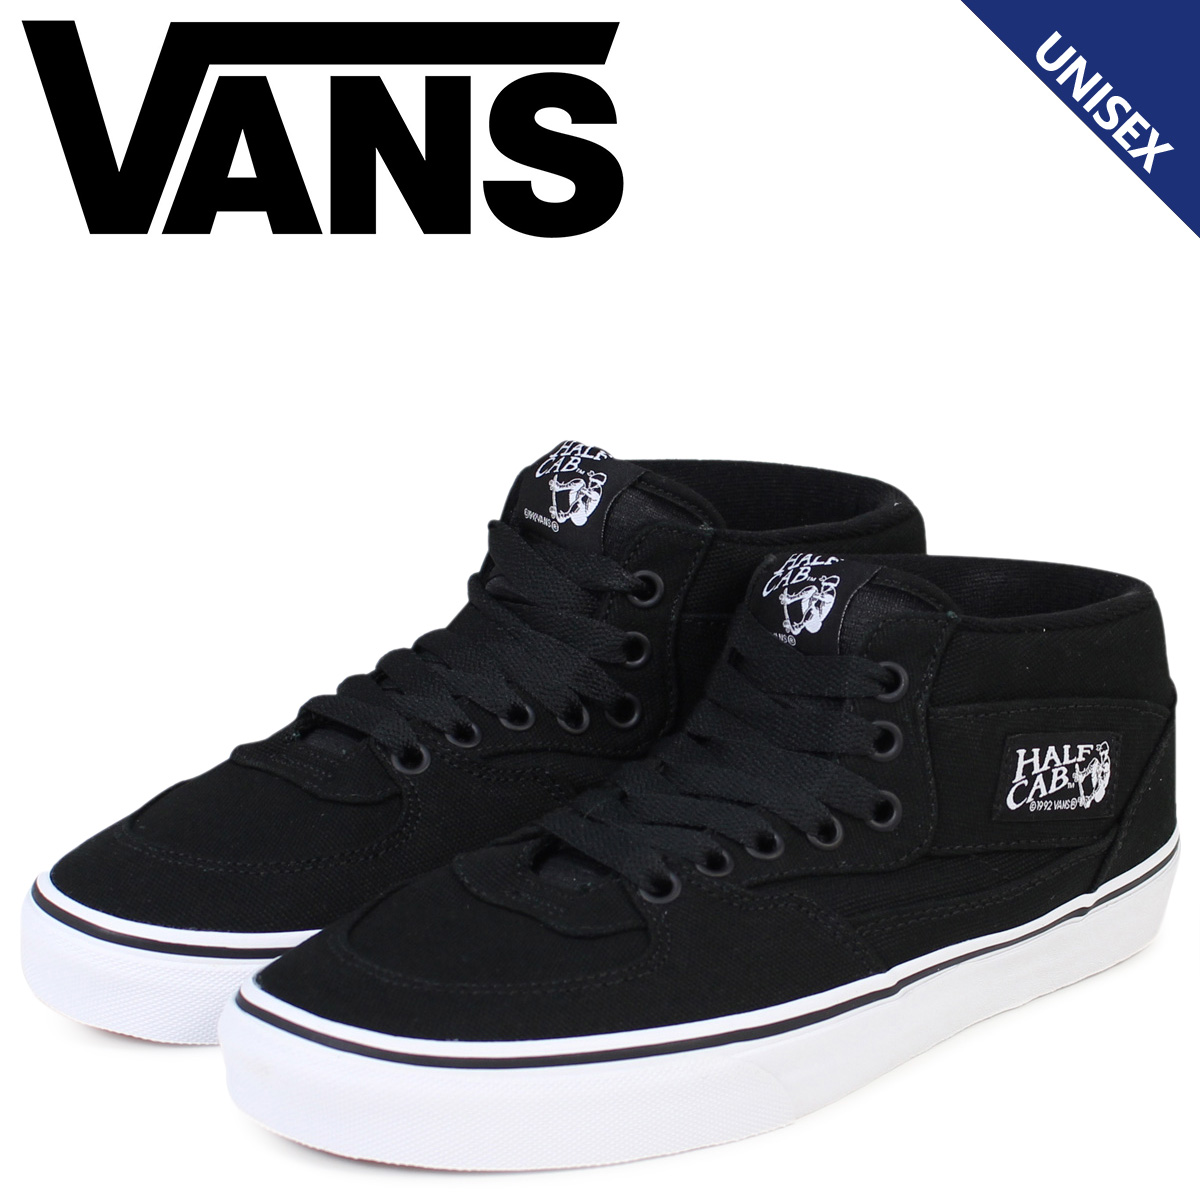 SneaK Online Shop: VANS sneakers mens Womens high cut half cab vans vans HALF CAB vn000w1w1 ...